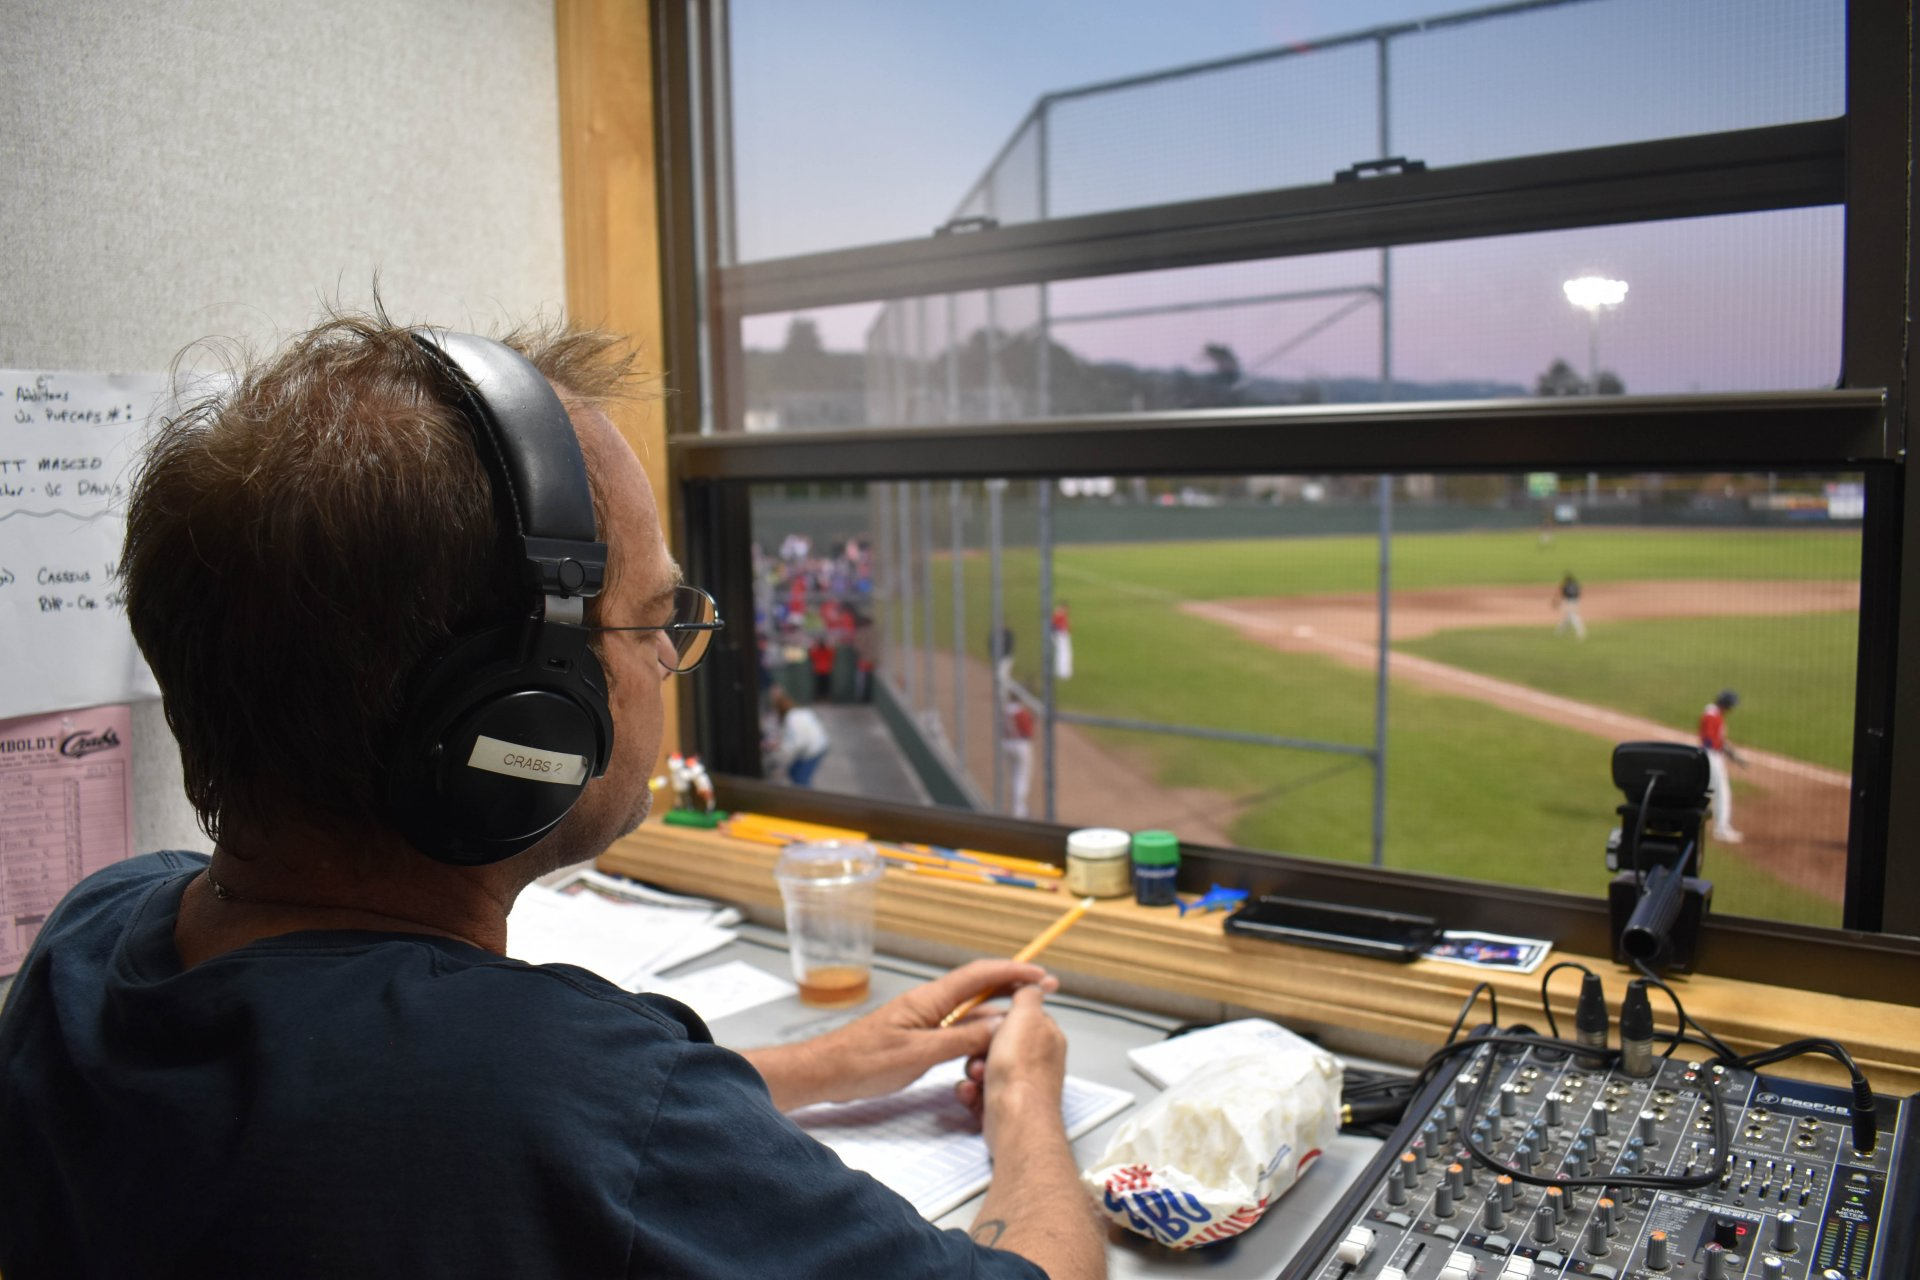 Benjamin Shaeffer looks out onto the field as he calls the Crabs game up in the booth. | Photo by Liam Warner